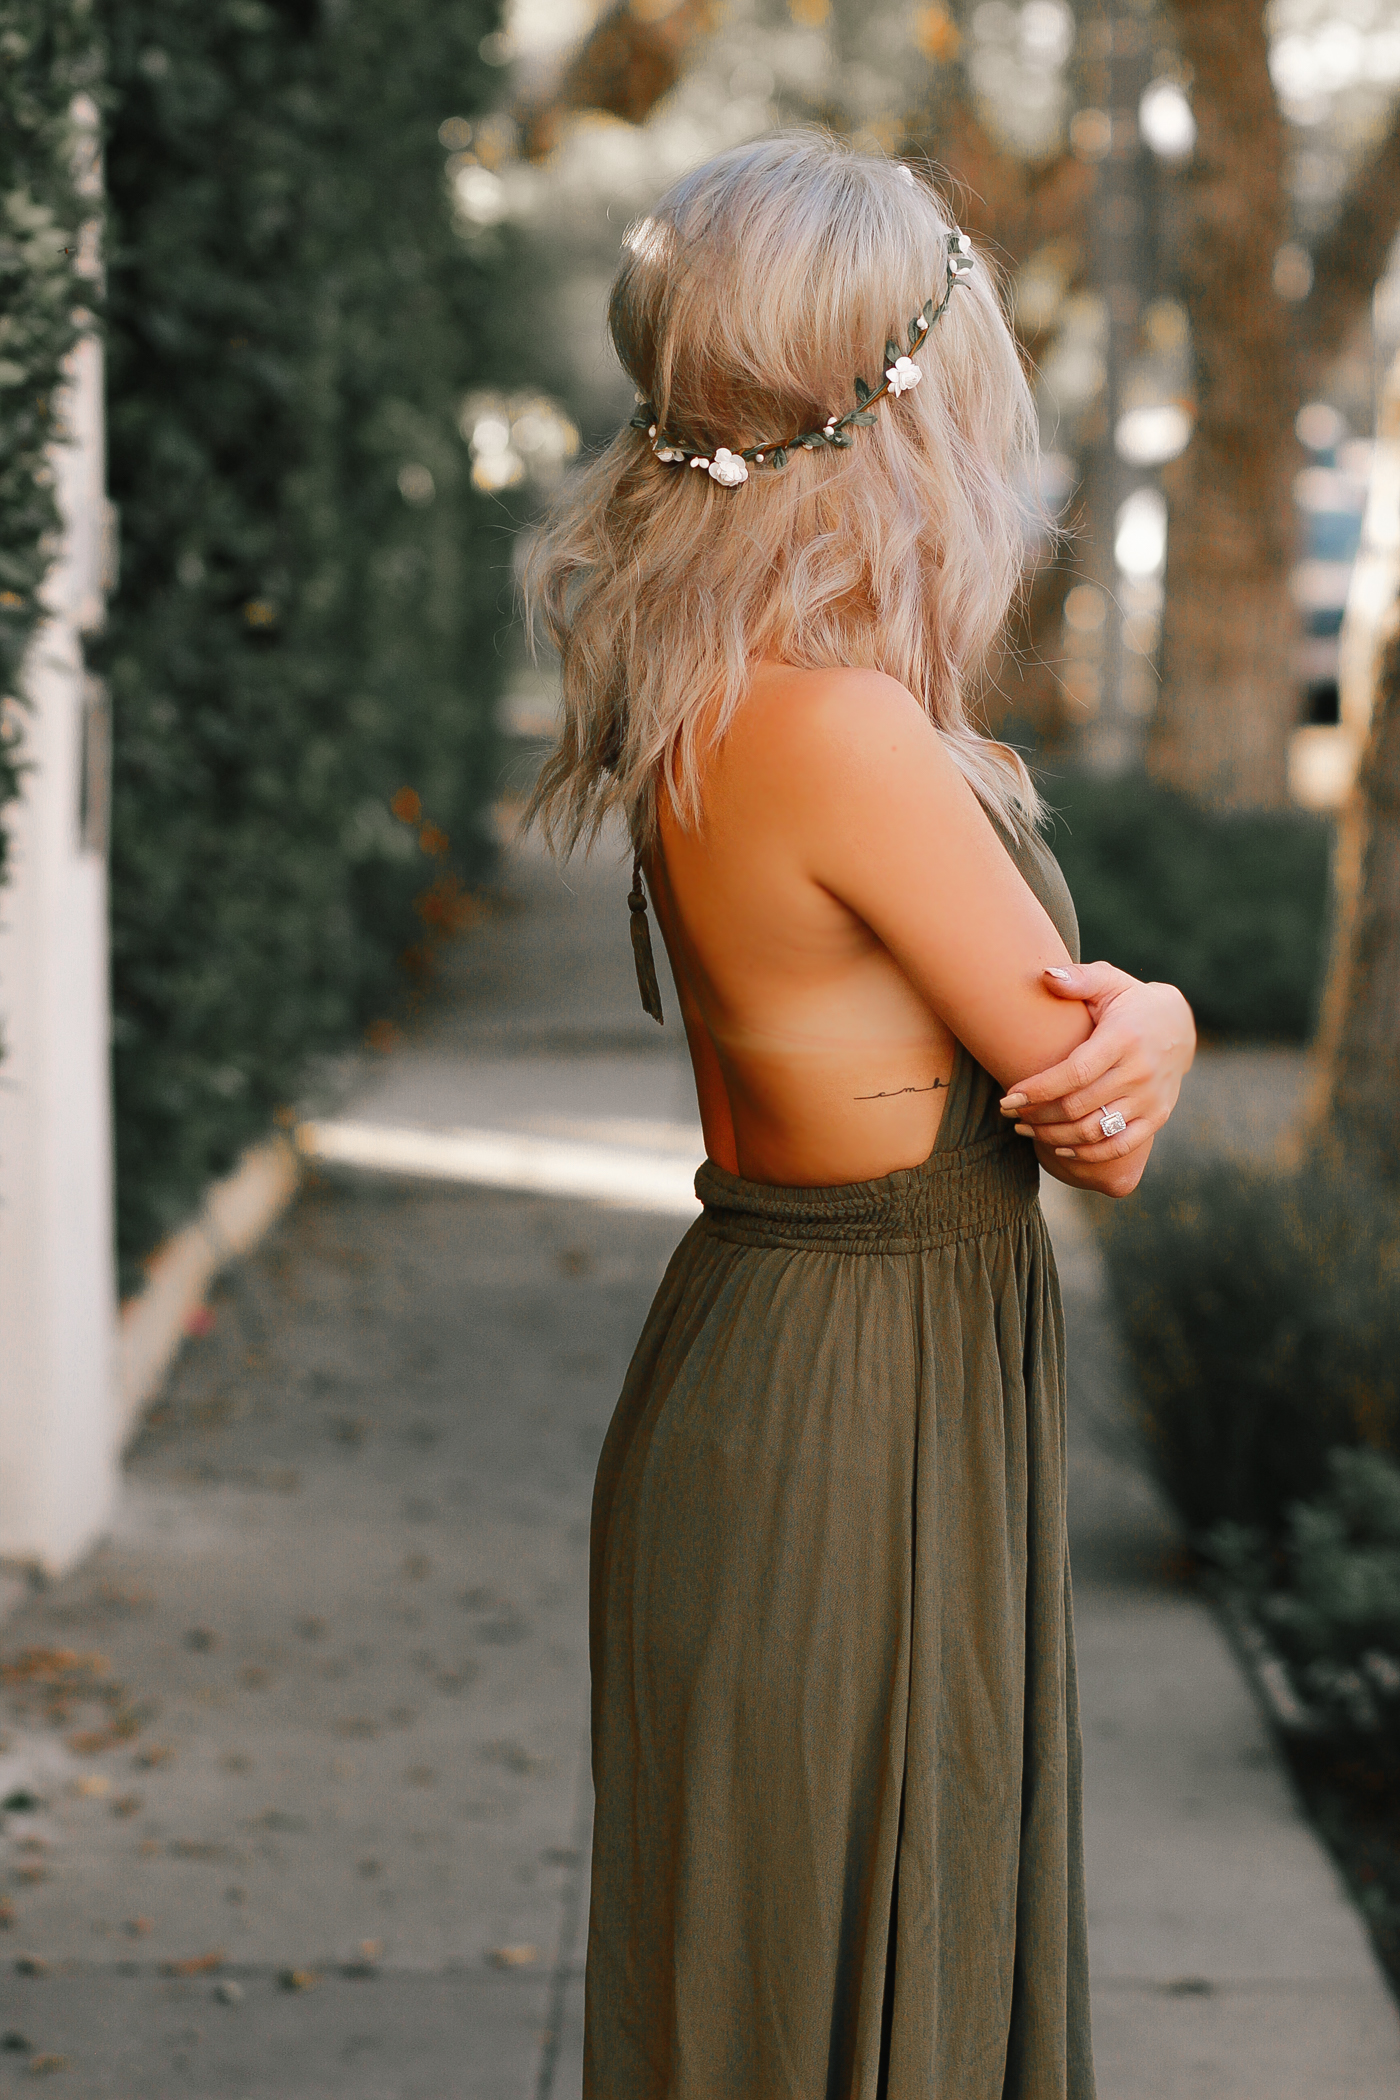 Blondie in the City | Forest Green Maxi Dress @forever21 | Fall Fashion, Boho Style